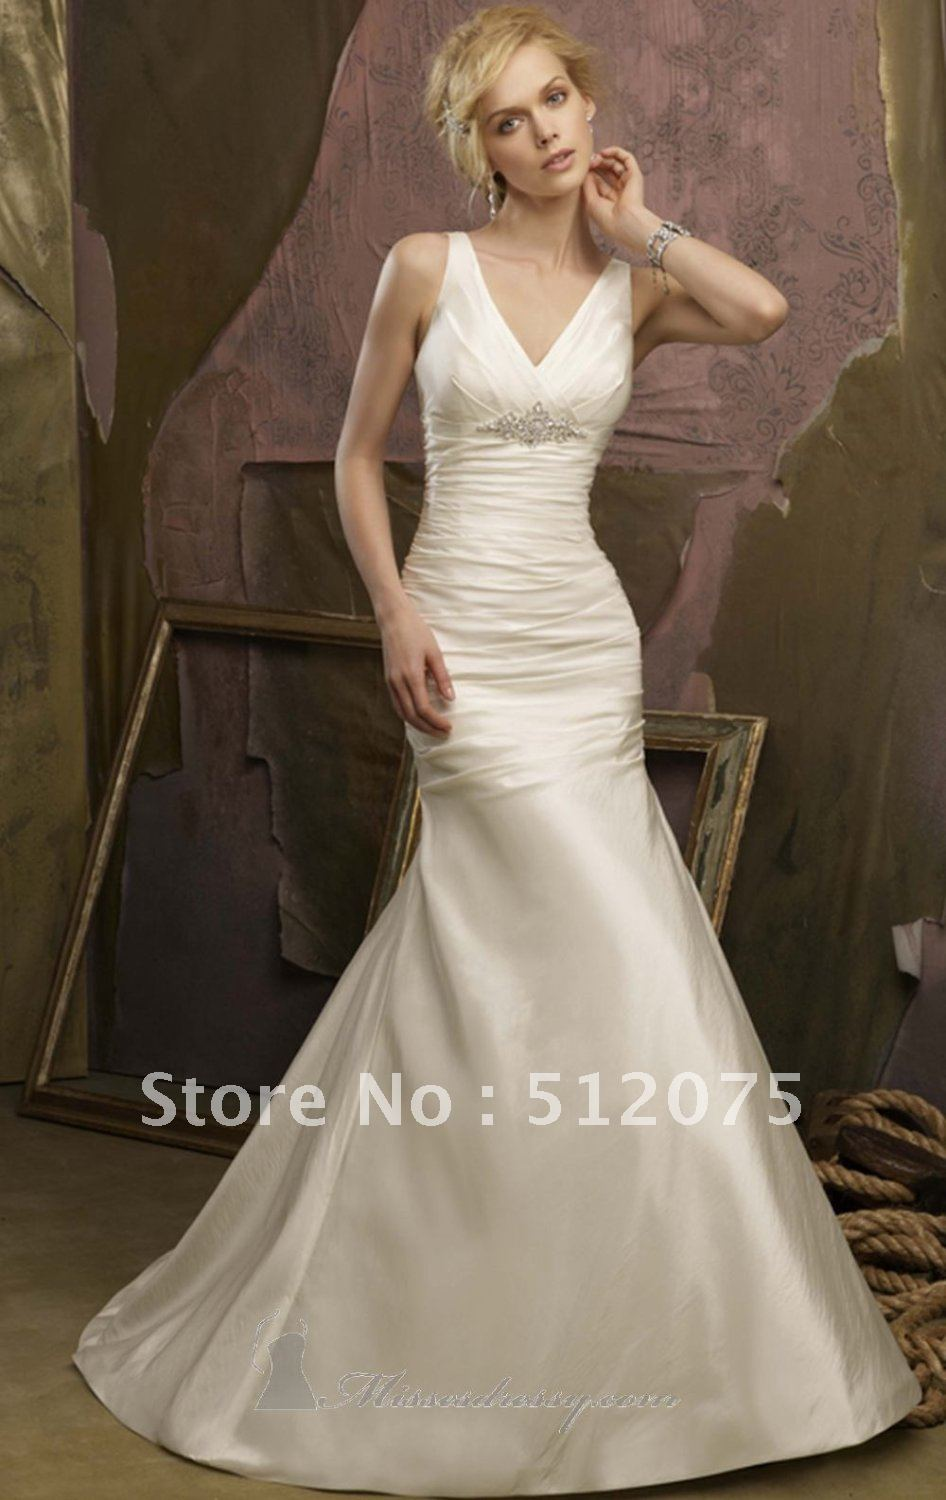 Wedding dresses for mother of the groom nicole miller for Nicole miller beach wedding dress